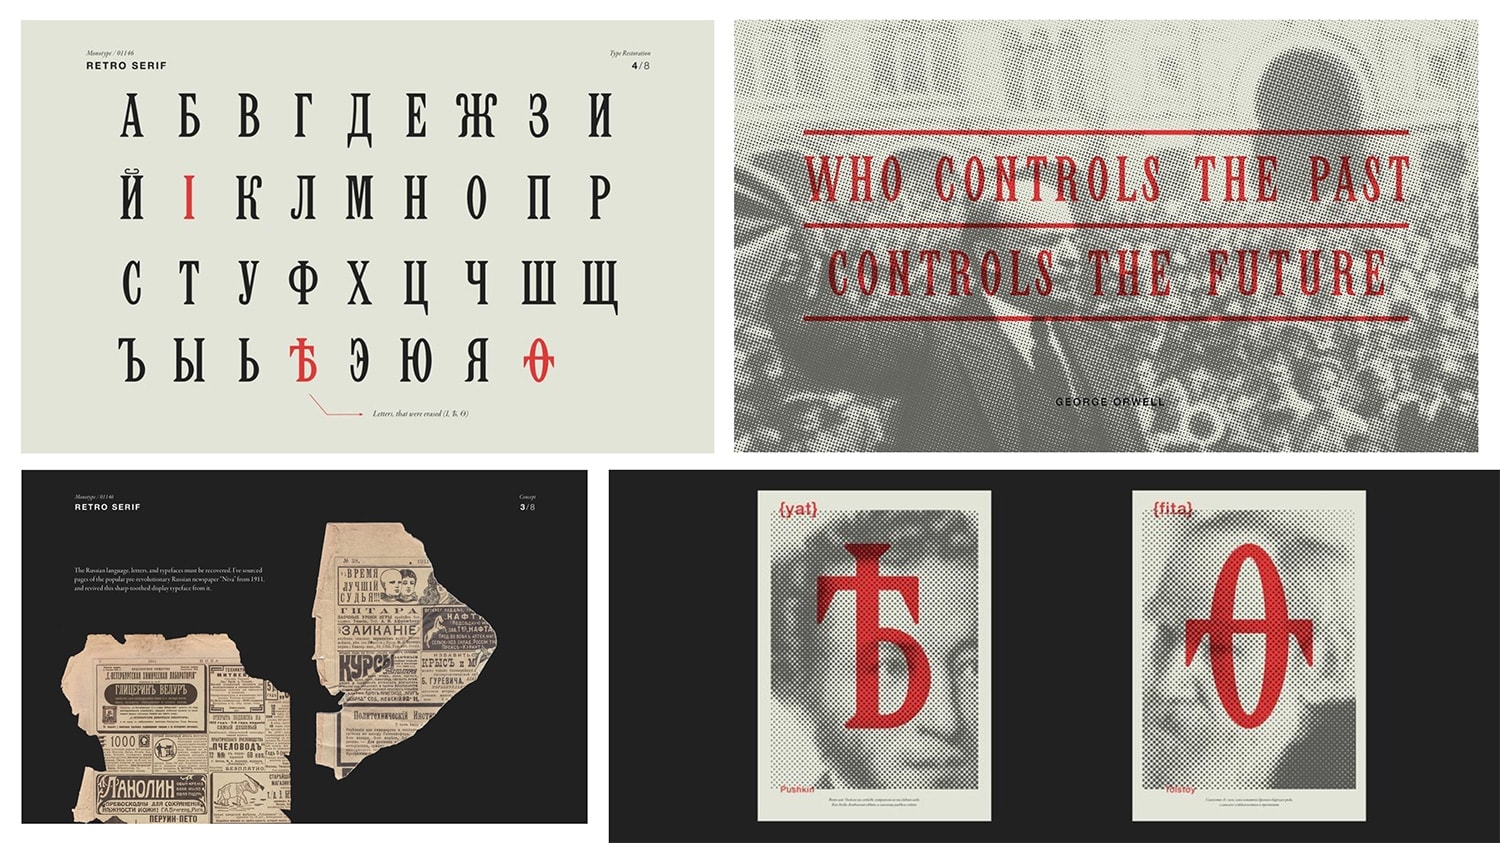 chelsea-ba-graphic-design-communication-Polina-Hohonova.jpg